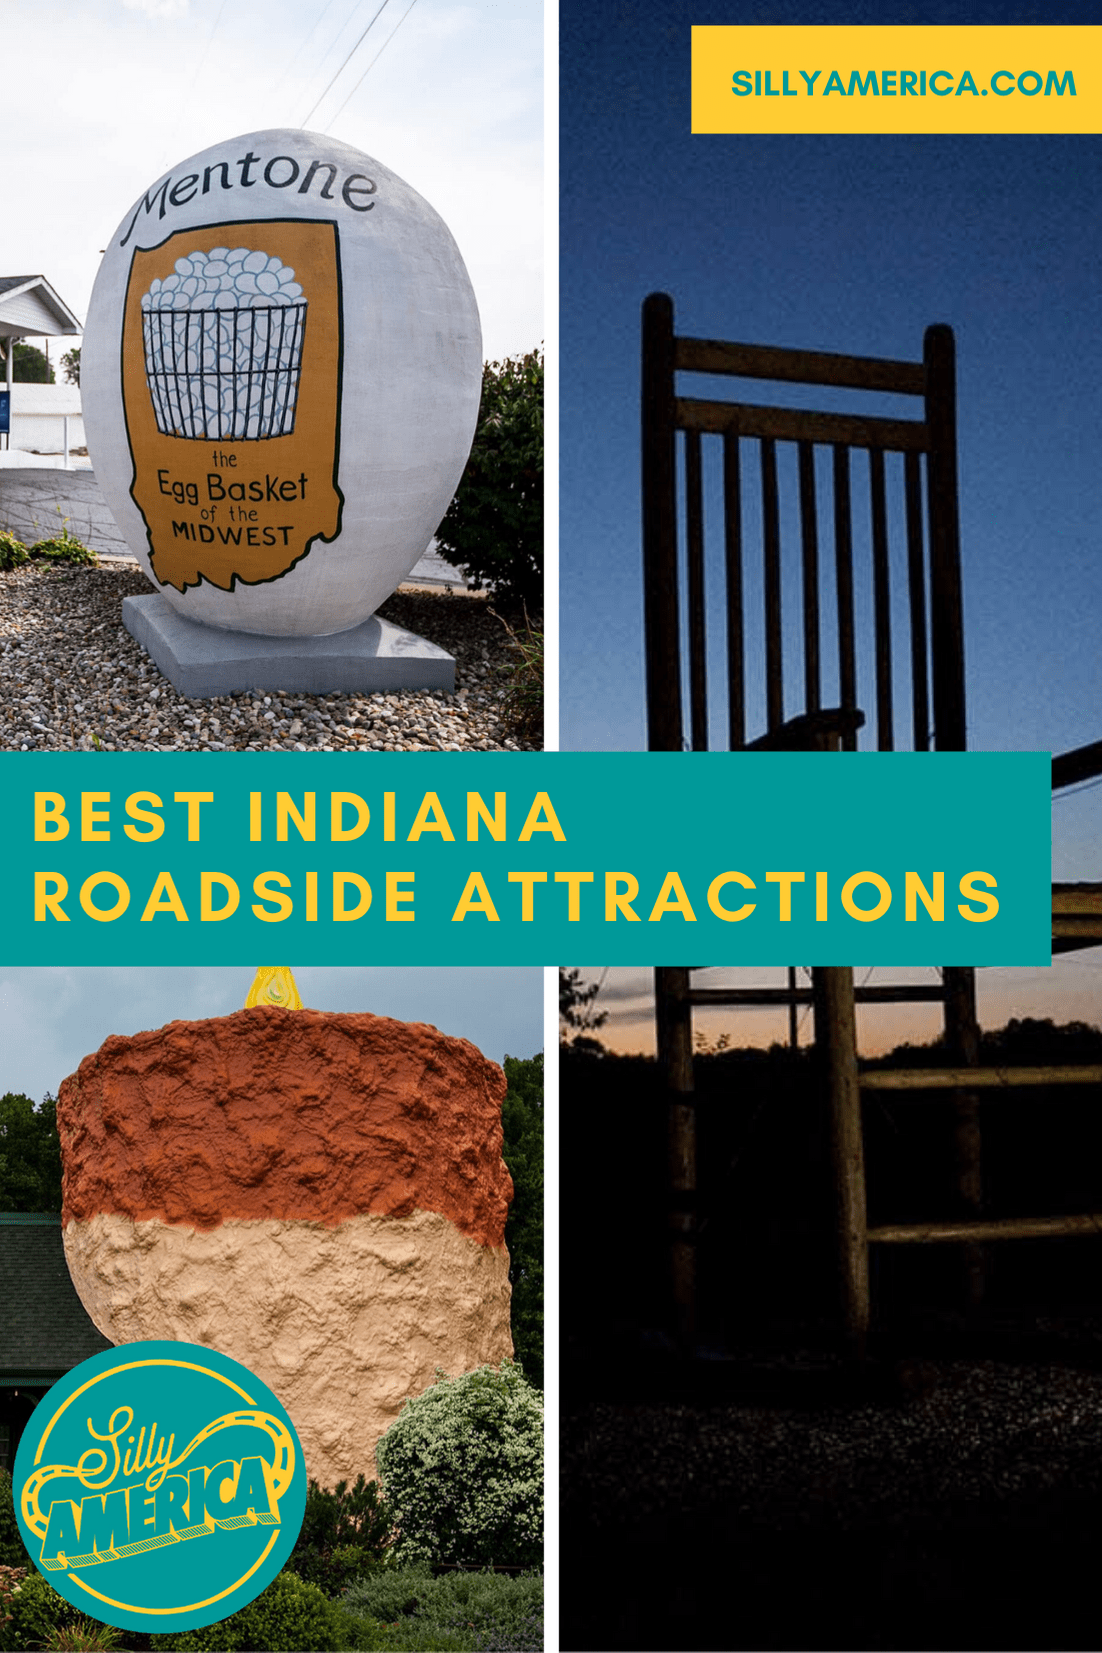 The best Indiana roadside attractions to visit on an Indiana road trip. Add these roadside oddities to your travel bucket list, itinerary, or route map! These fun places to visit in Indiana are must see road trip stops for kids or adults.  #IndianaRoadsideAttractions #IndianaRoadsideAttraction #RoadsideAttractions #RoadsideAttraction #RoadTrip #IndianaRoadTrip #PlacesToVisitInIndiana #IndianaRoadTripIdeas #IndianaRoadTripWithKids #IndianaTravel #ThingsToDoInIndiana #WeirdRoadsideAttractions